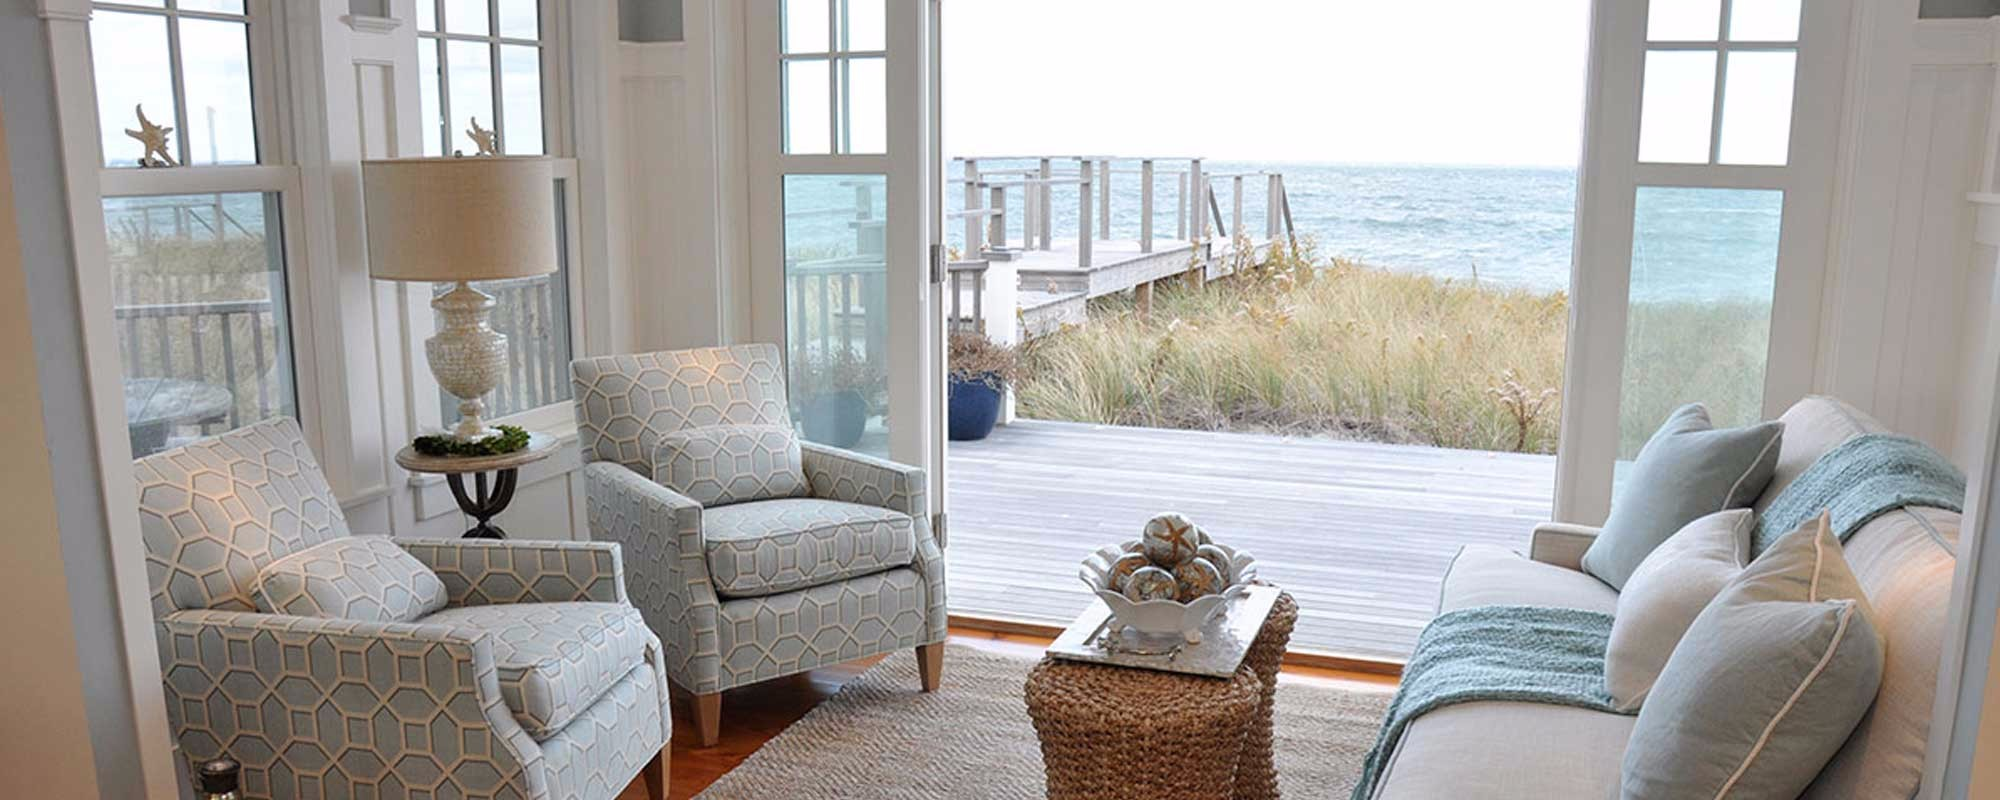 Interior design cape cod ma casabella interiors - Design interior ...